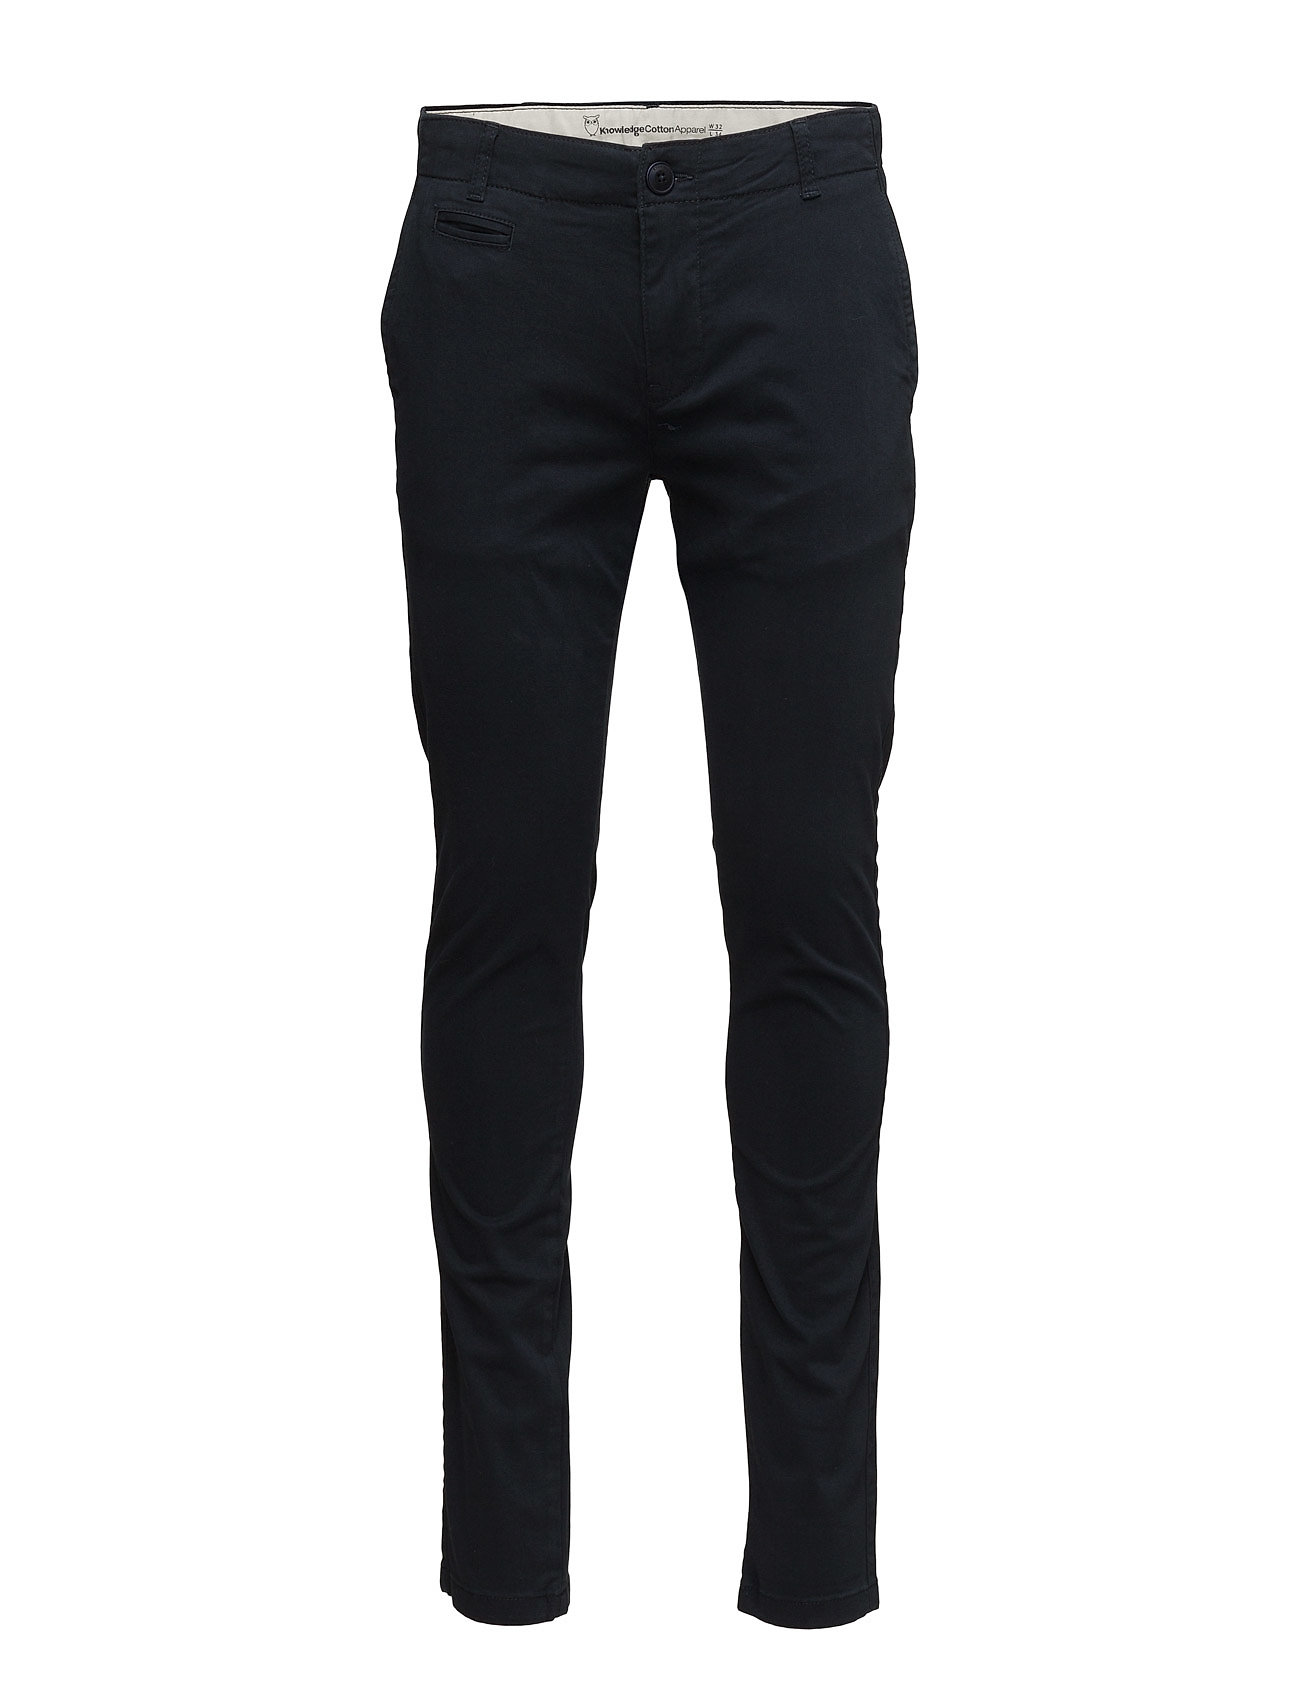 Knowledge Cotton Apparel JOE chino pant - TOTAL ECLIPSE